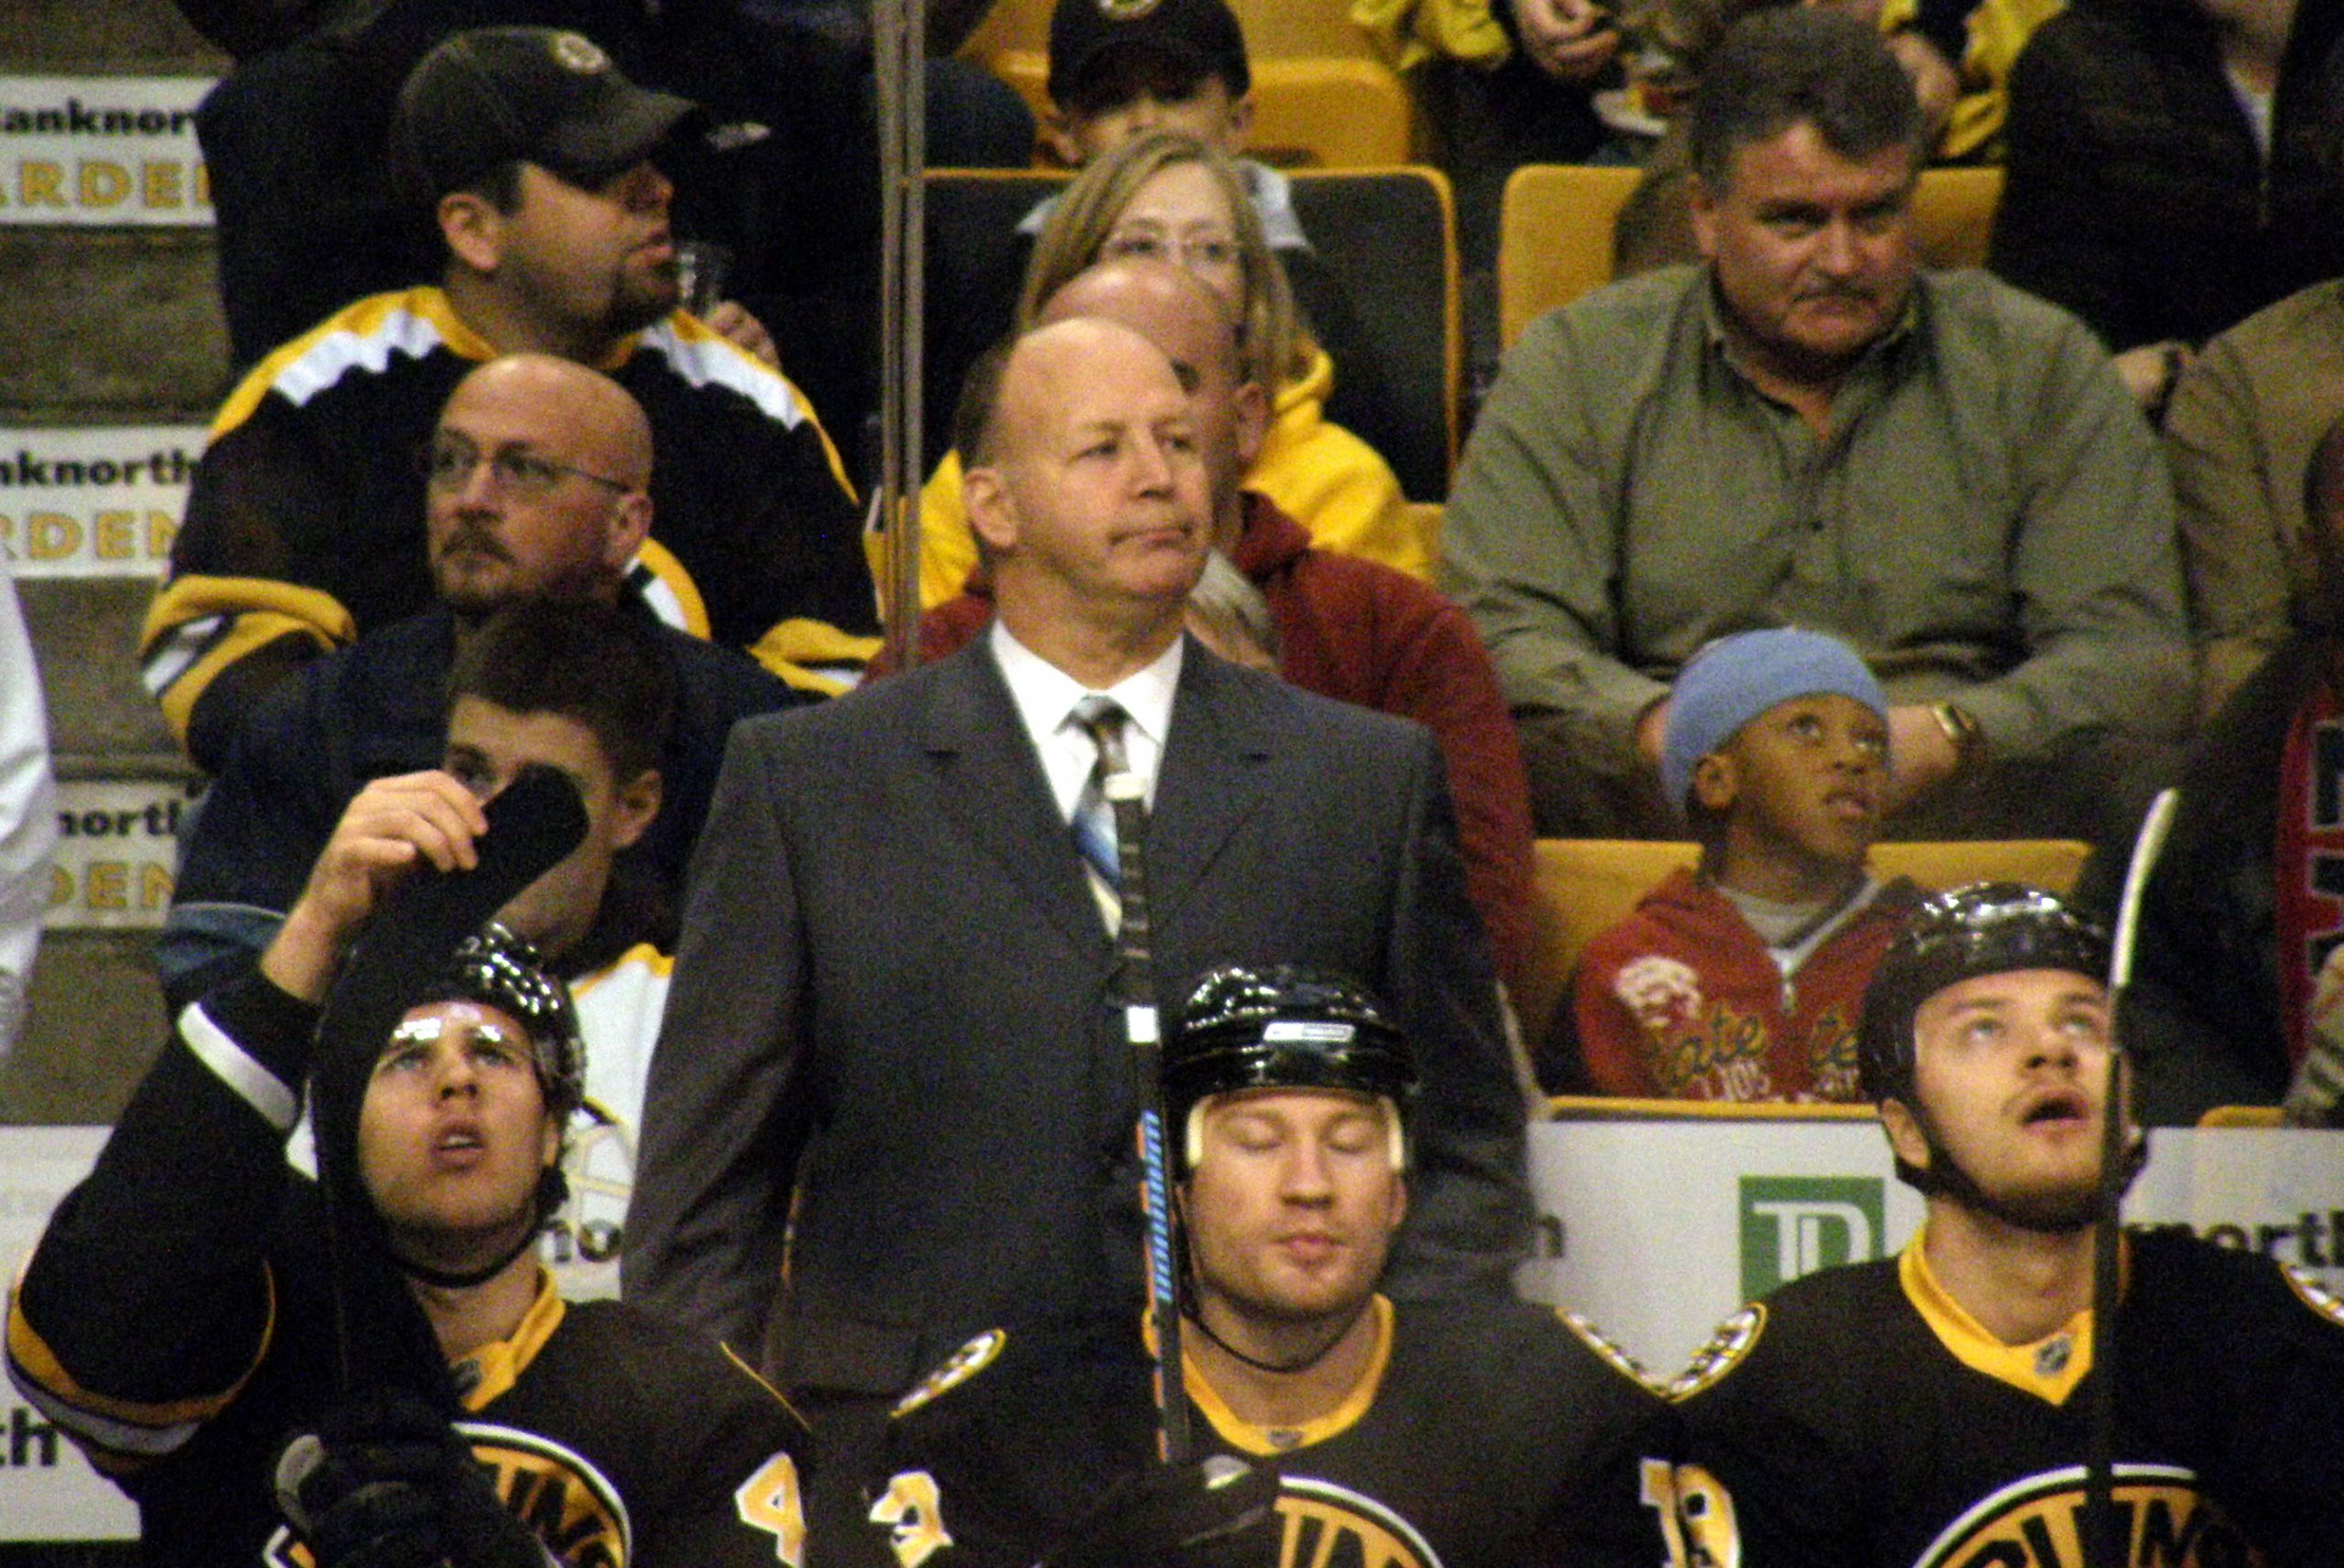 Claude Julien, Michael Ryder posing for the camera